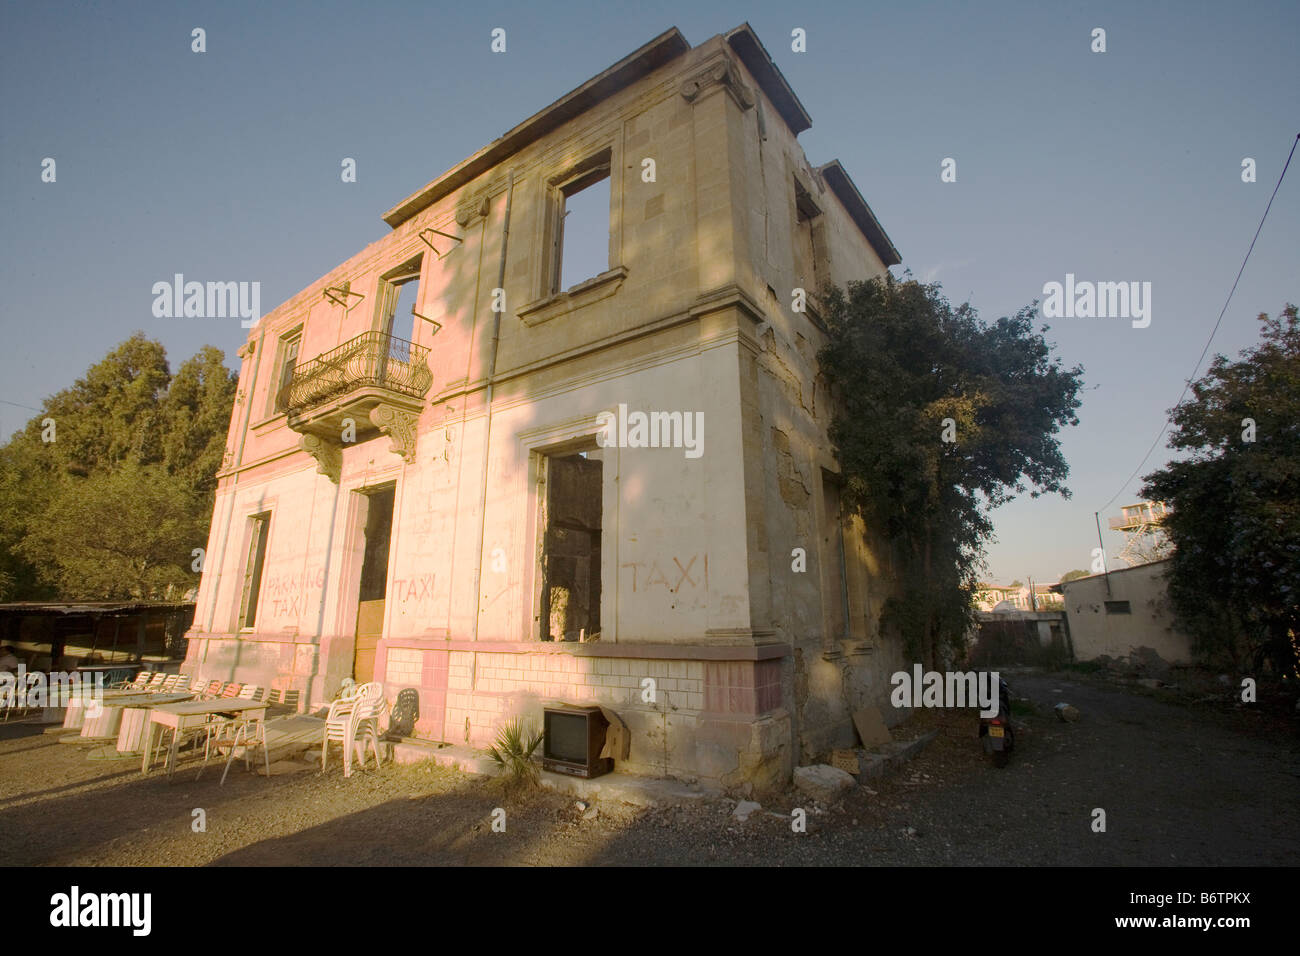 Abandoned building with outdoor cafe attached in the Green Line UN buffer zone, Nicosia, Cyprus - Stock Image